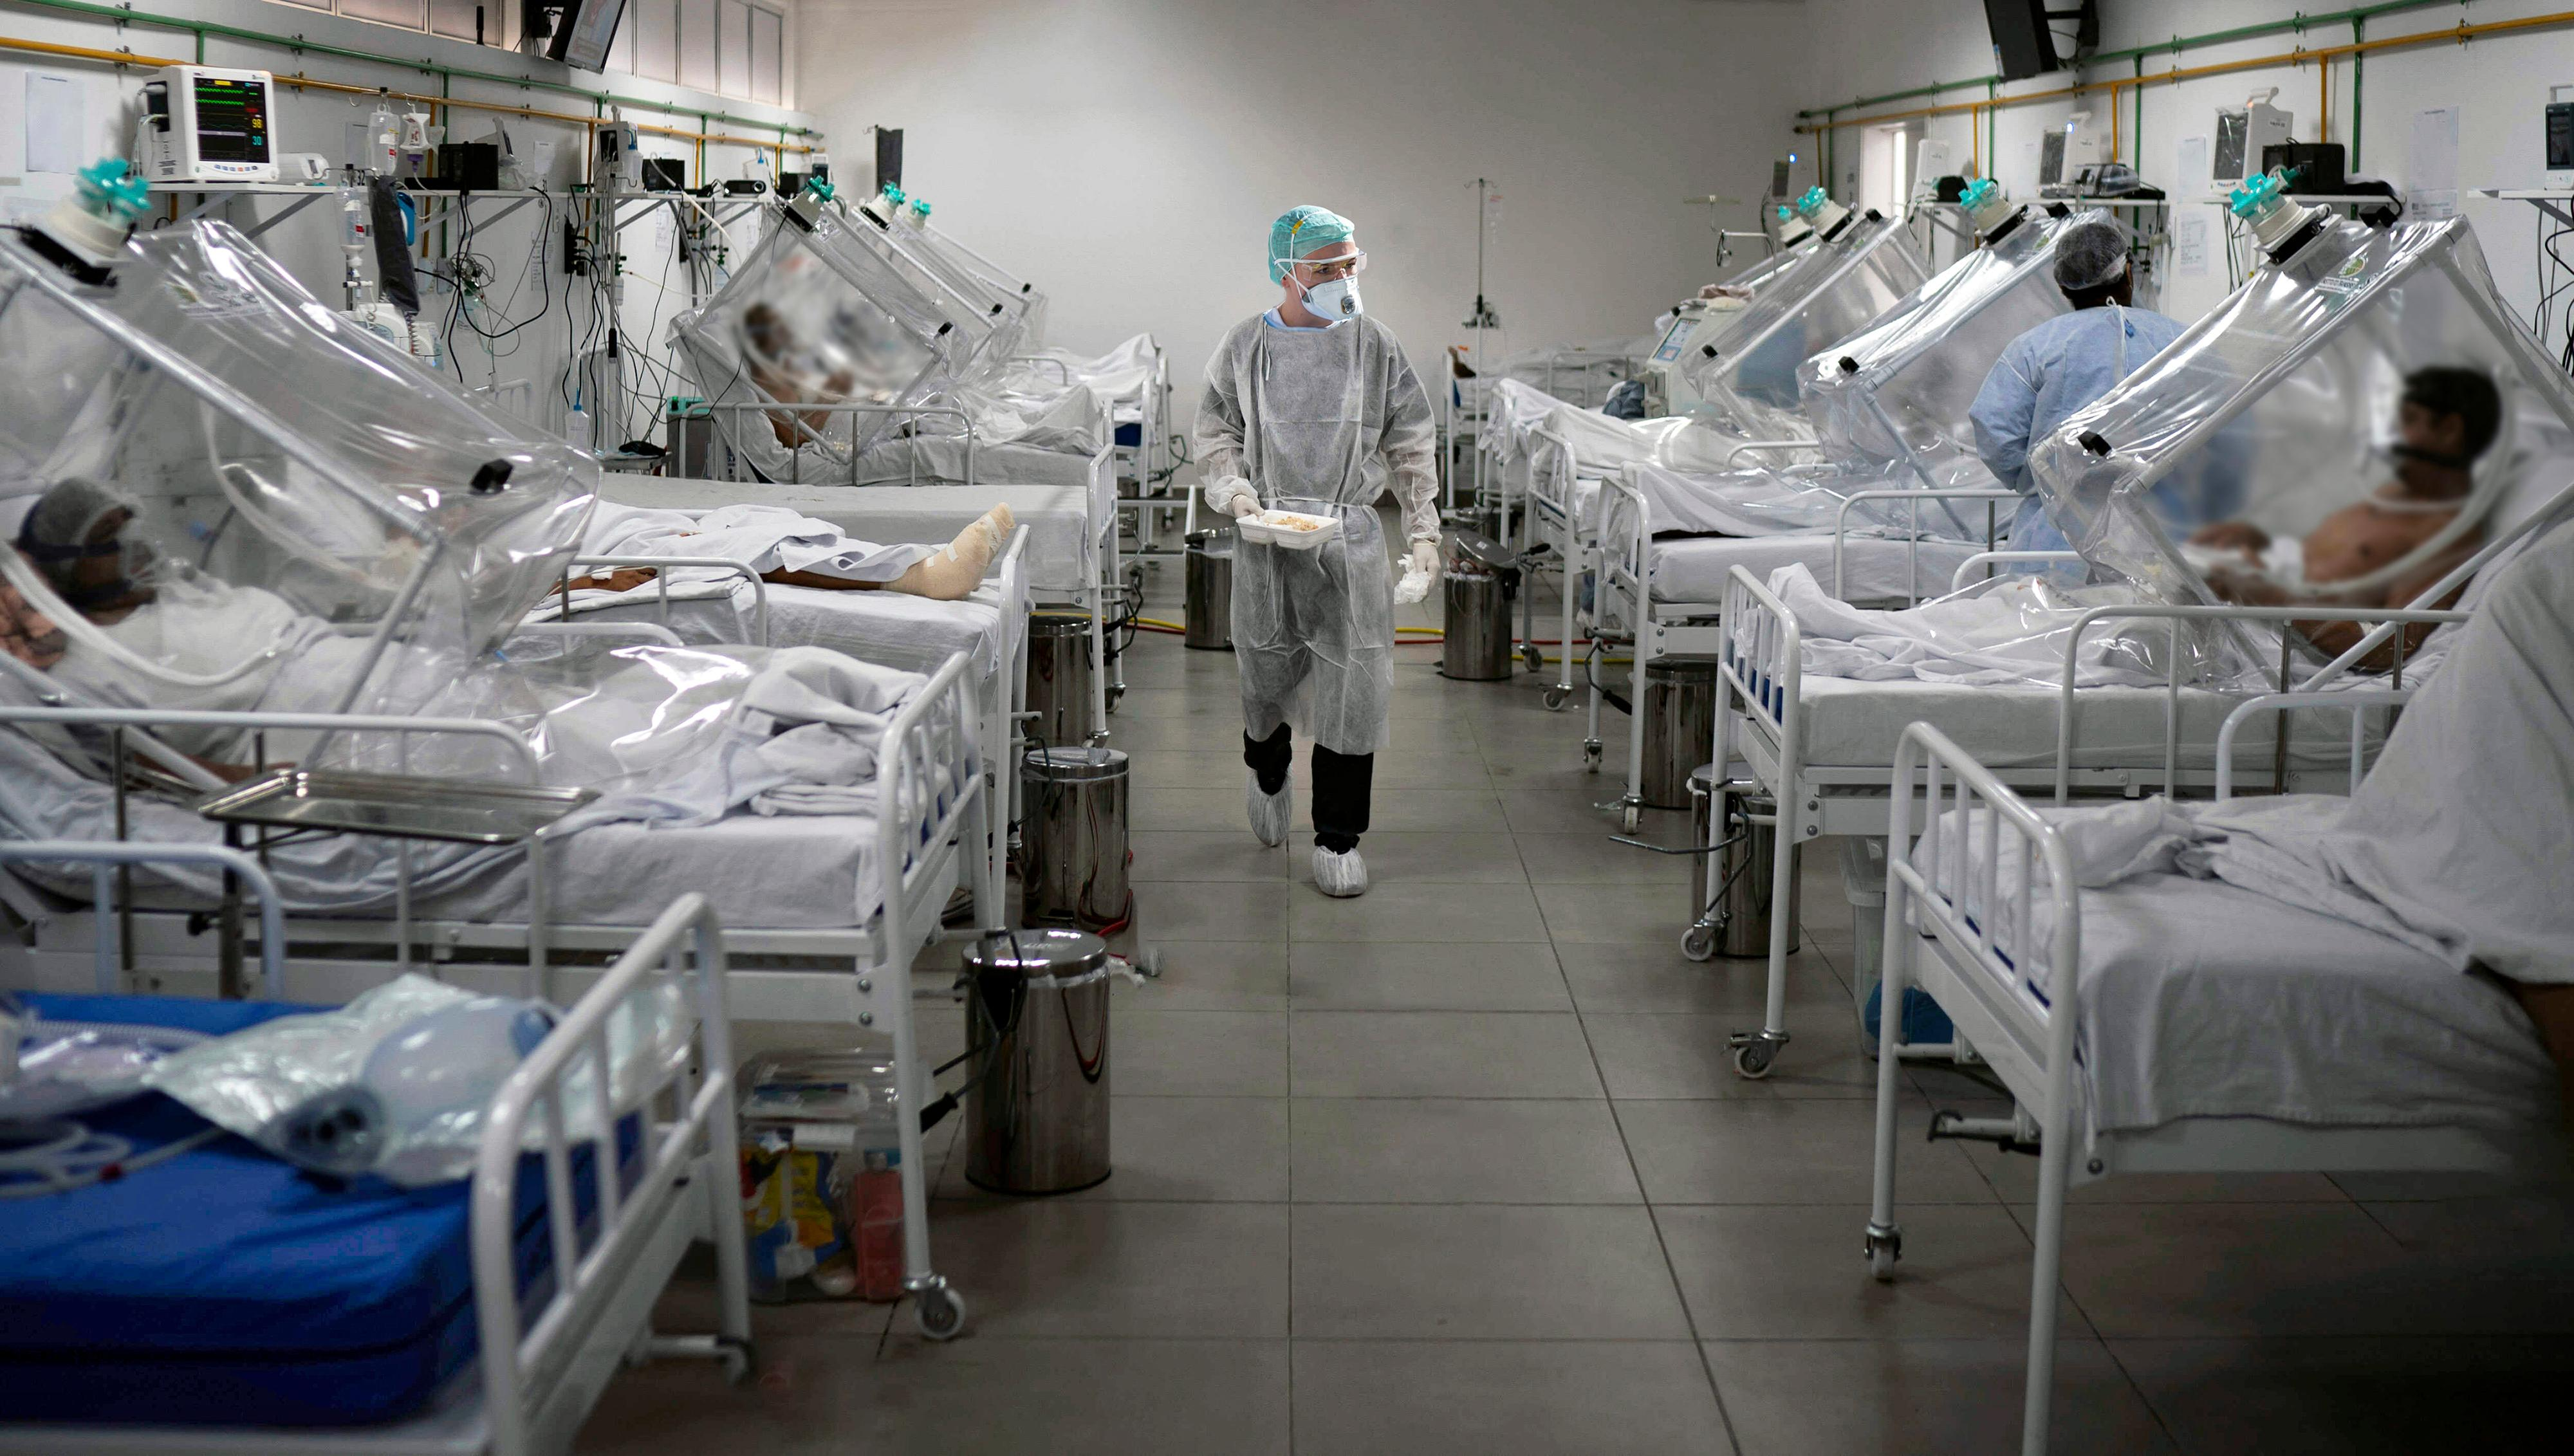 Medical staff work in the Intensive Care Unit (ICU) for COVID-19 multiple patients inside a special hospital in Bergamo, Italy